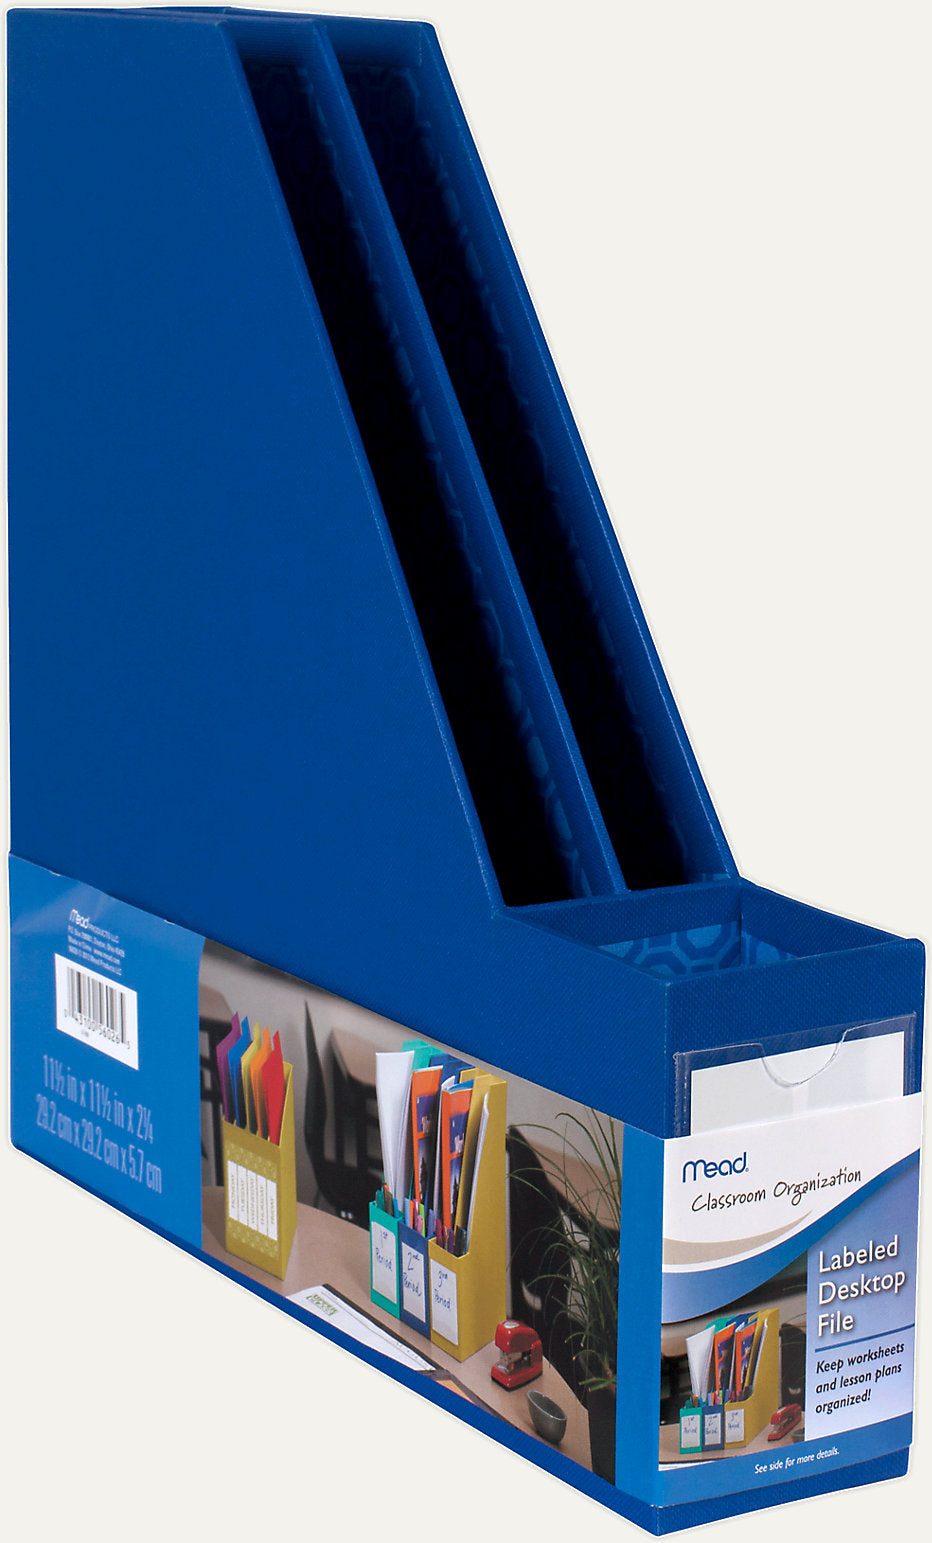 Mead Classroom Organization Labeled Desktop File, Various Colors (56026)